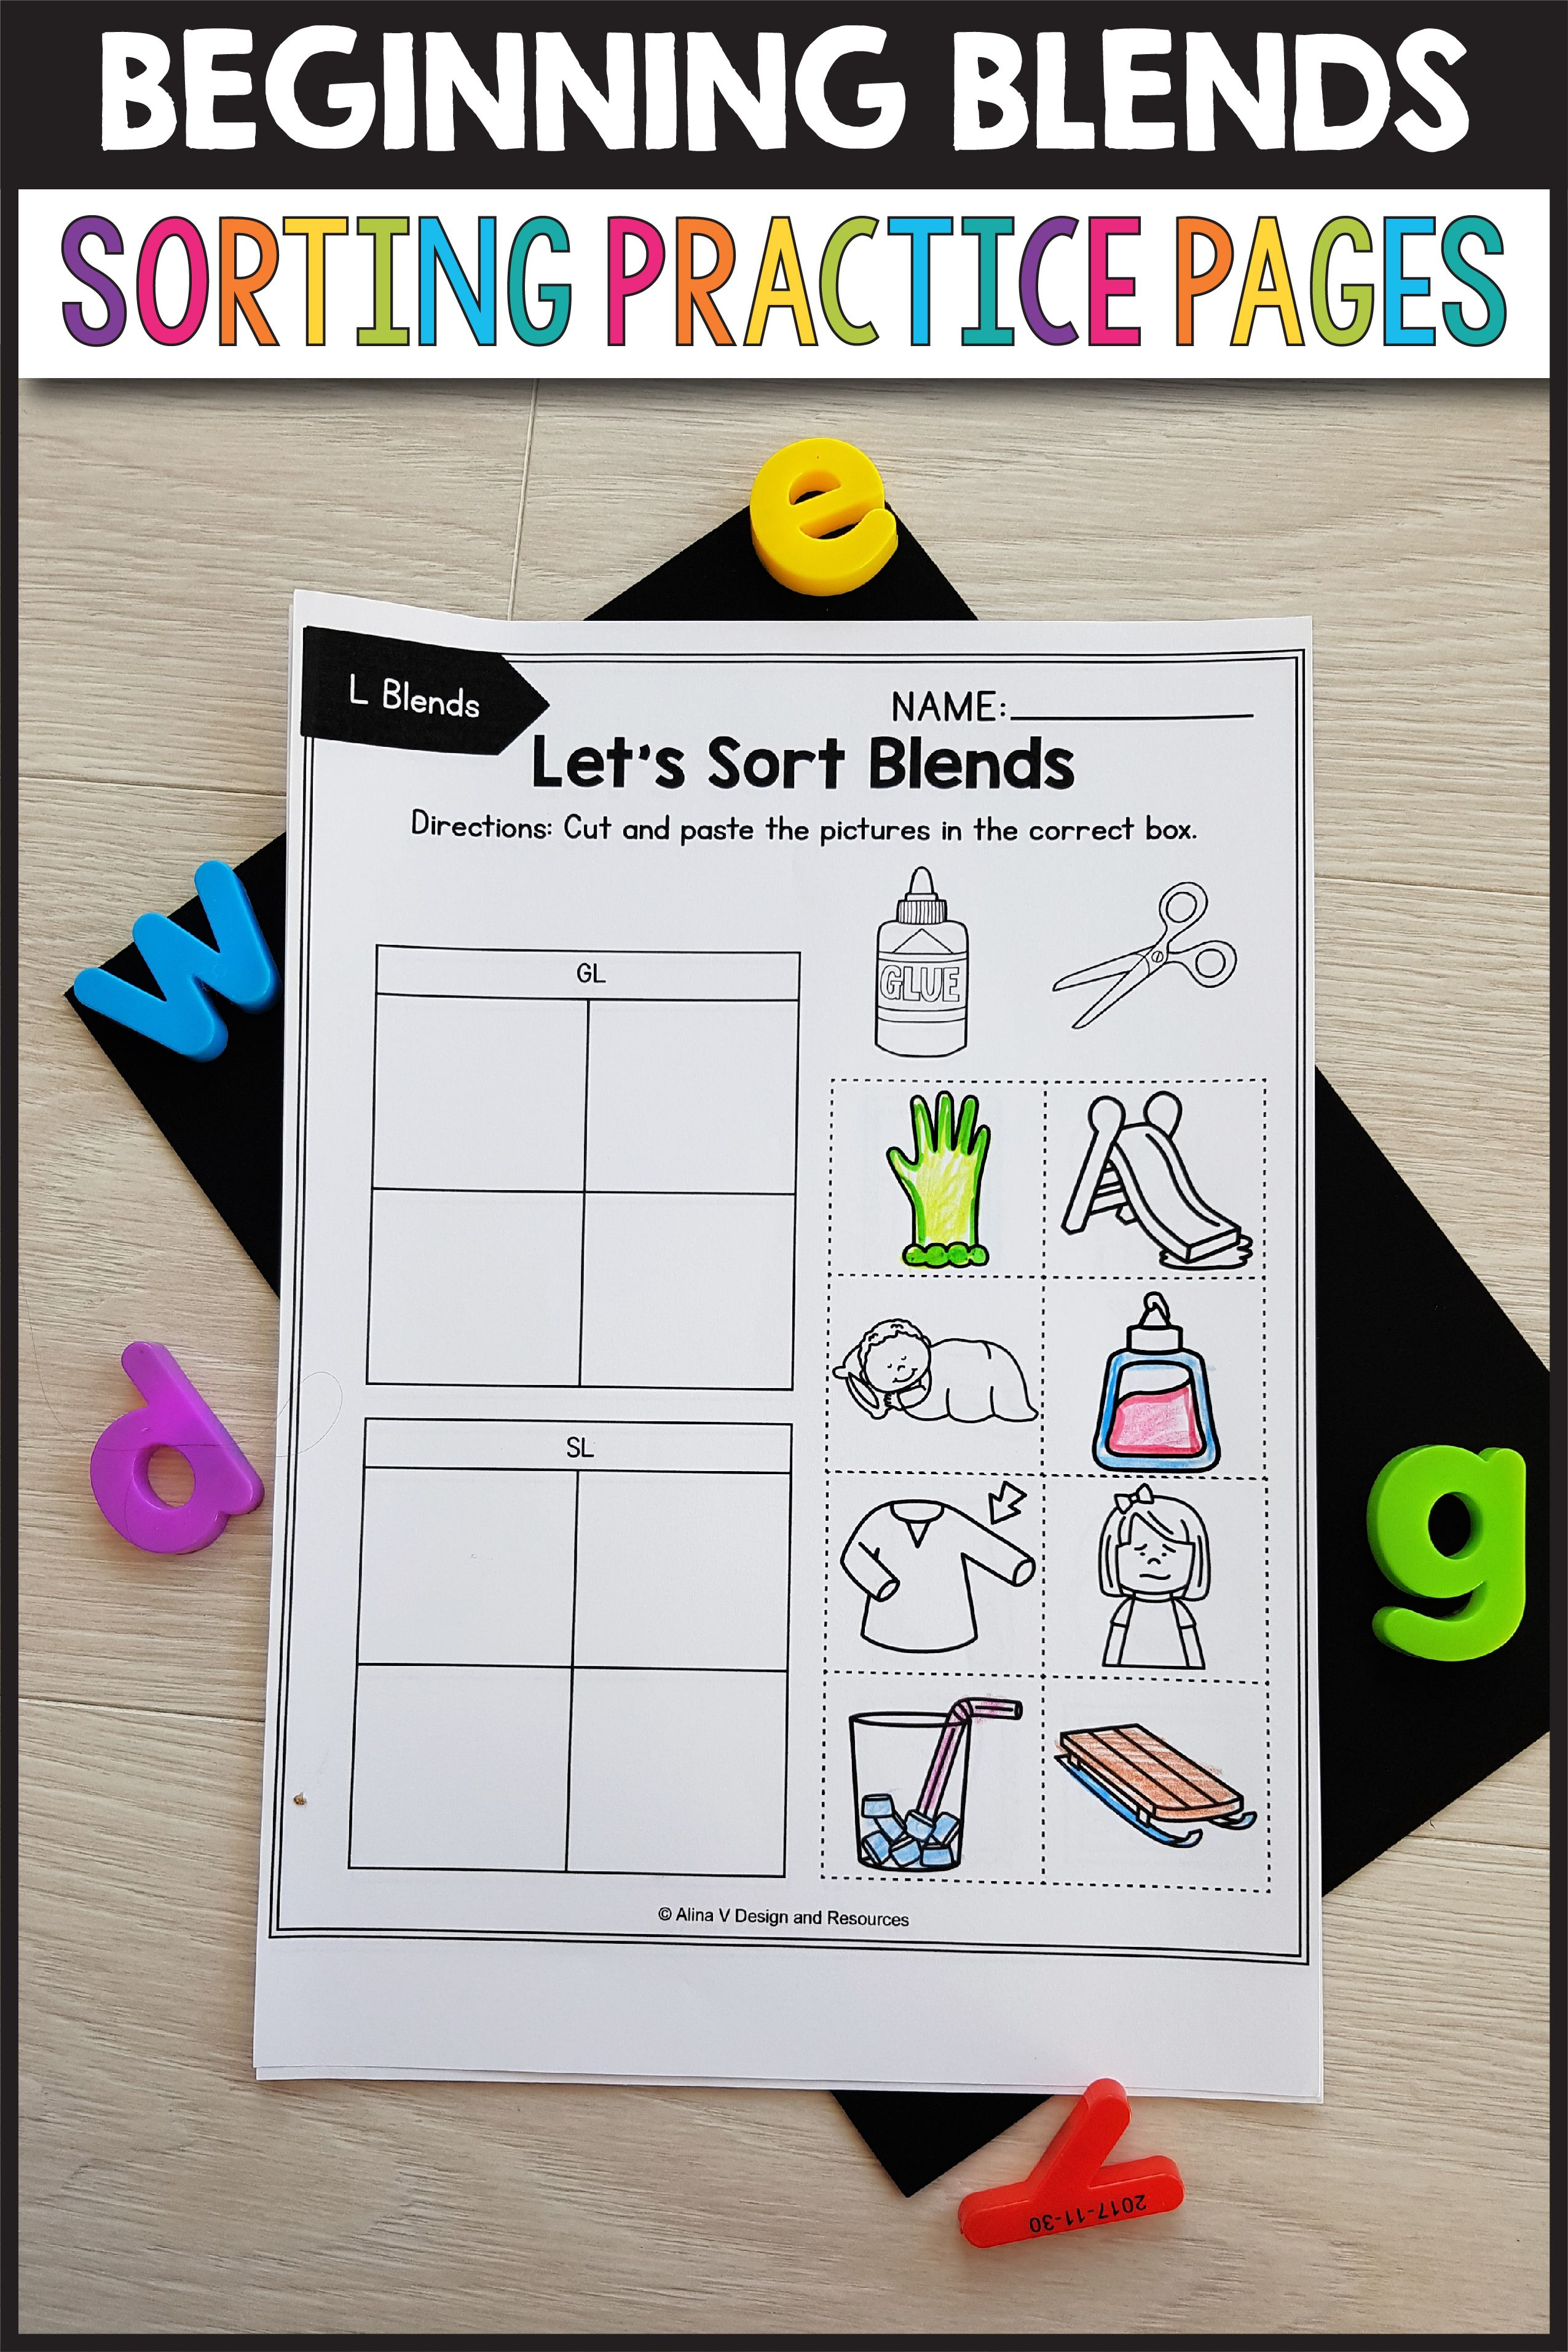 L Blends Worksheets S Blends Activities